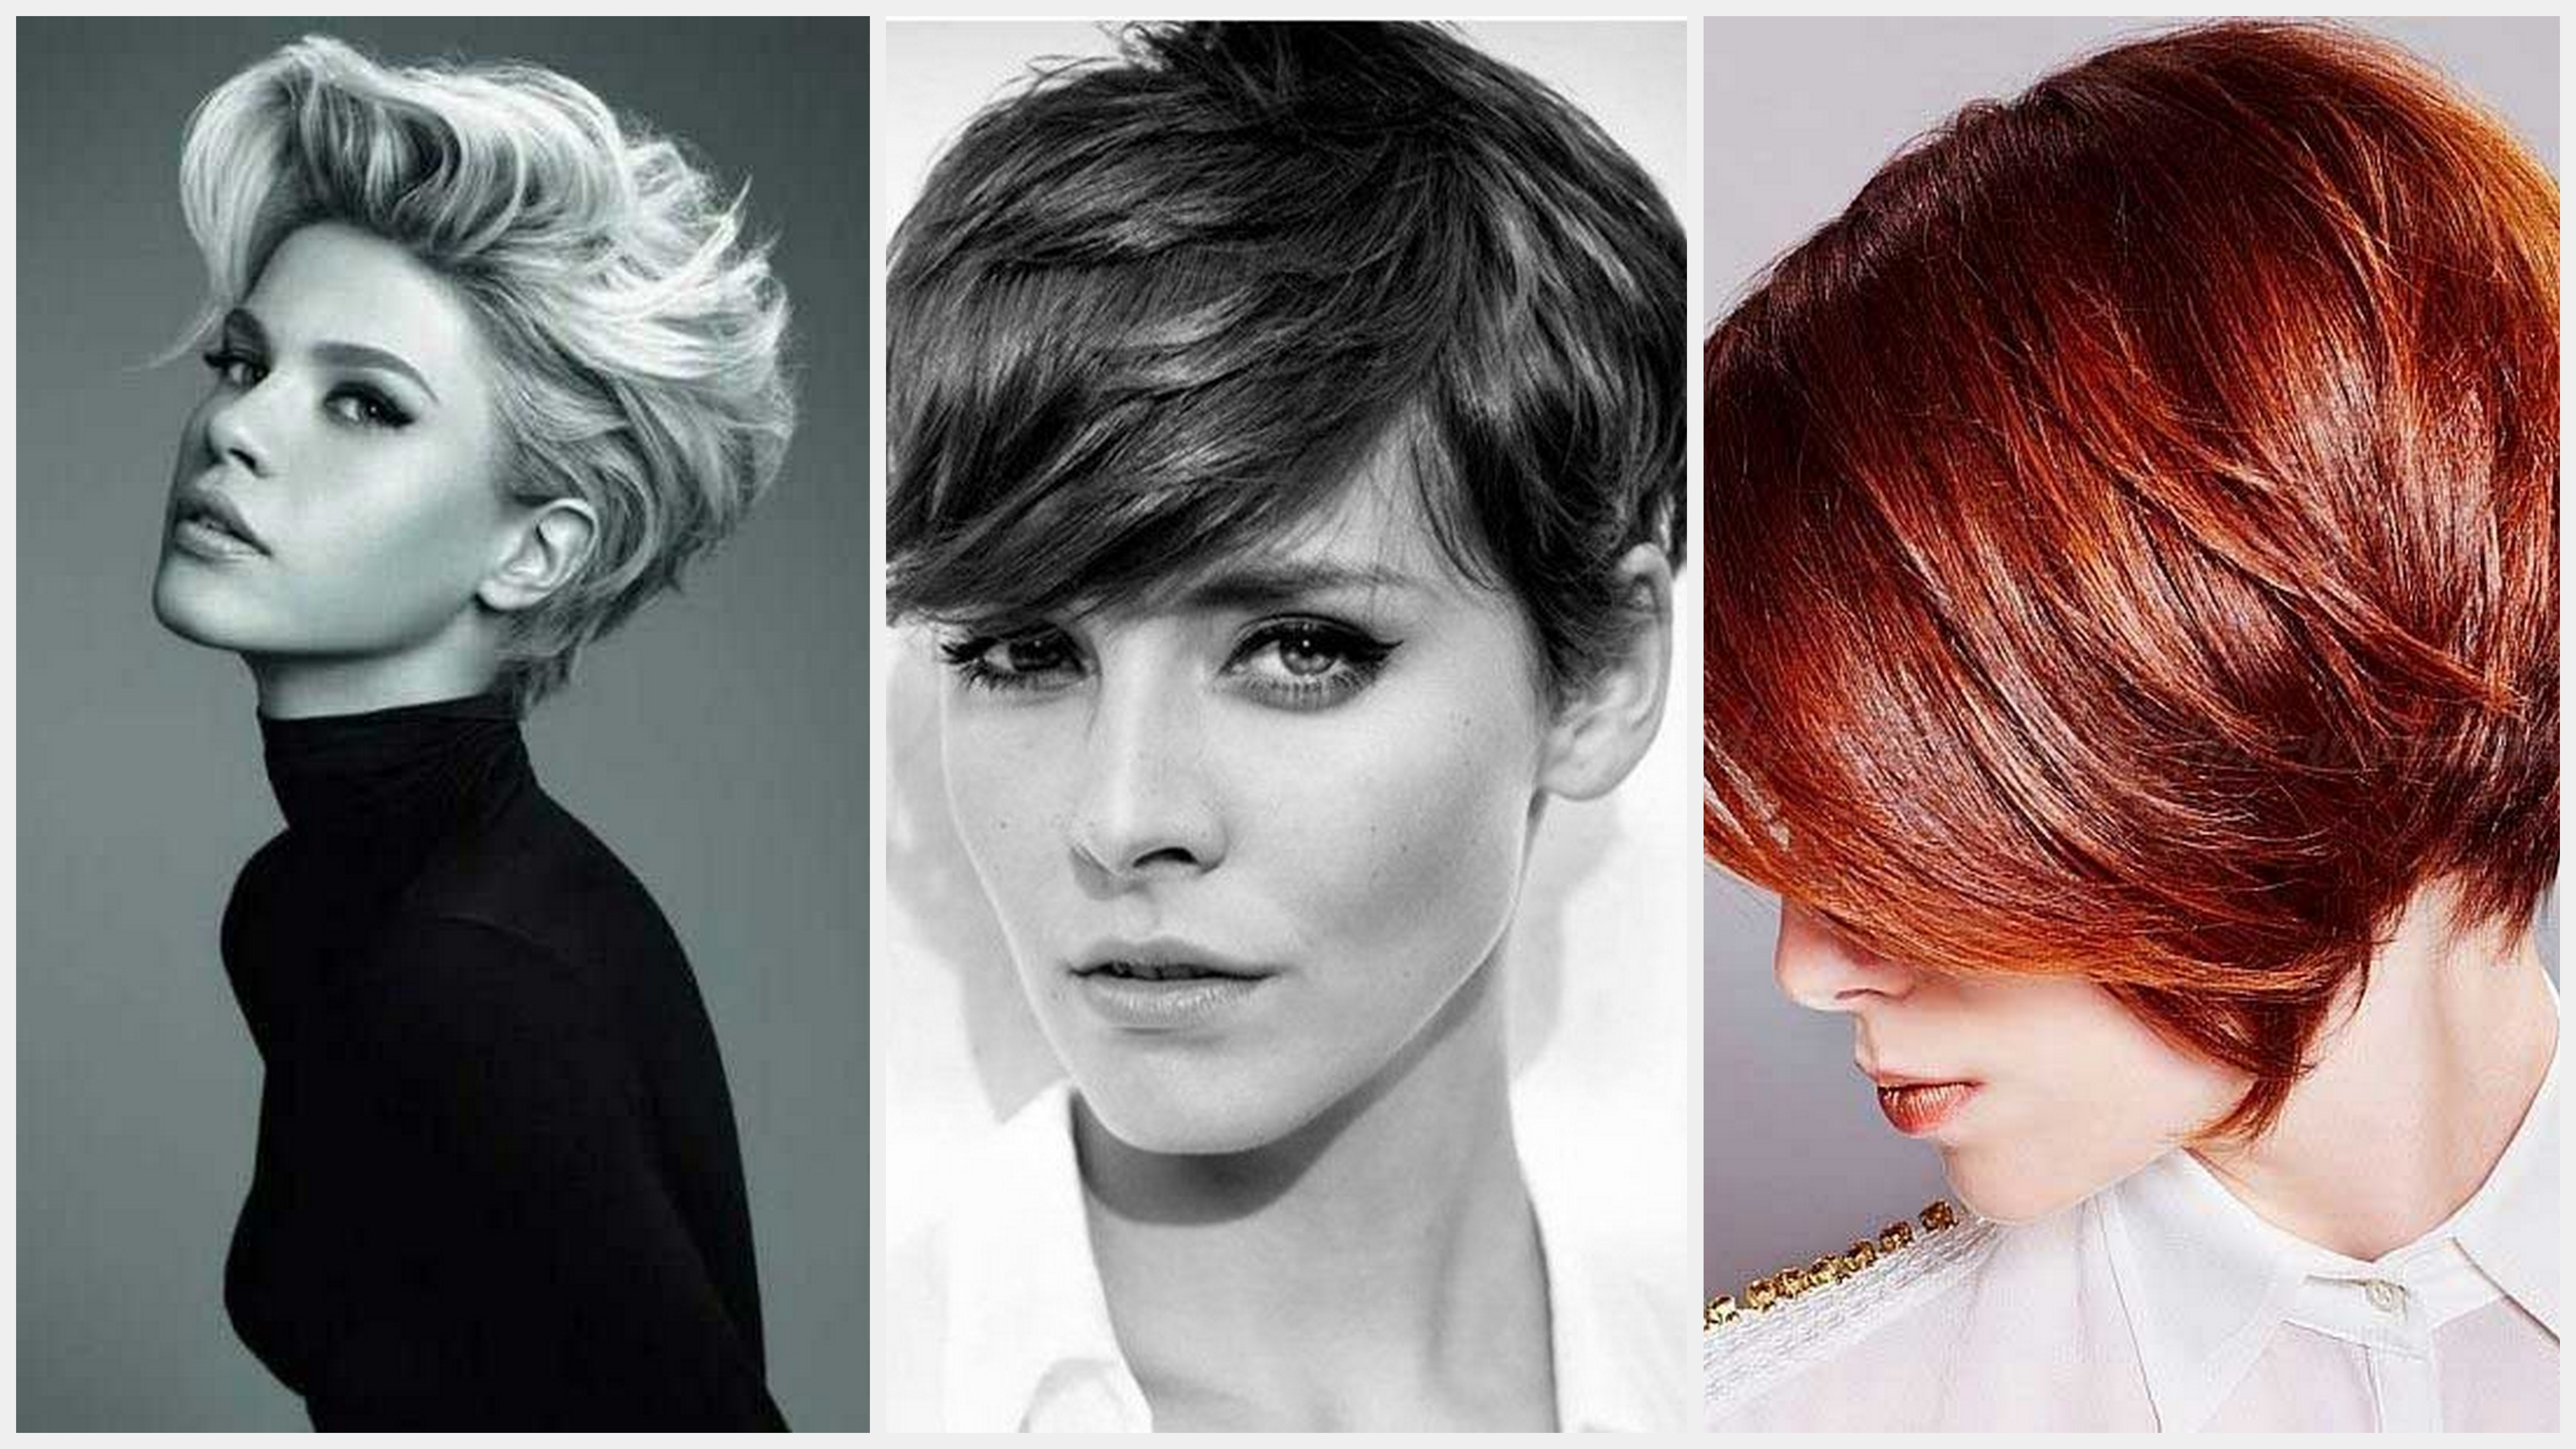 111 Cute Short Haircuts For Women Useful Diy Projects